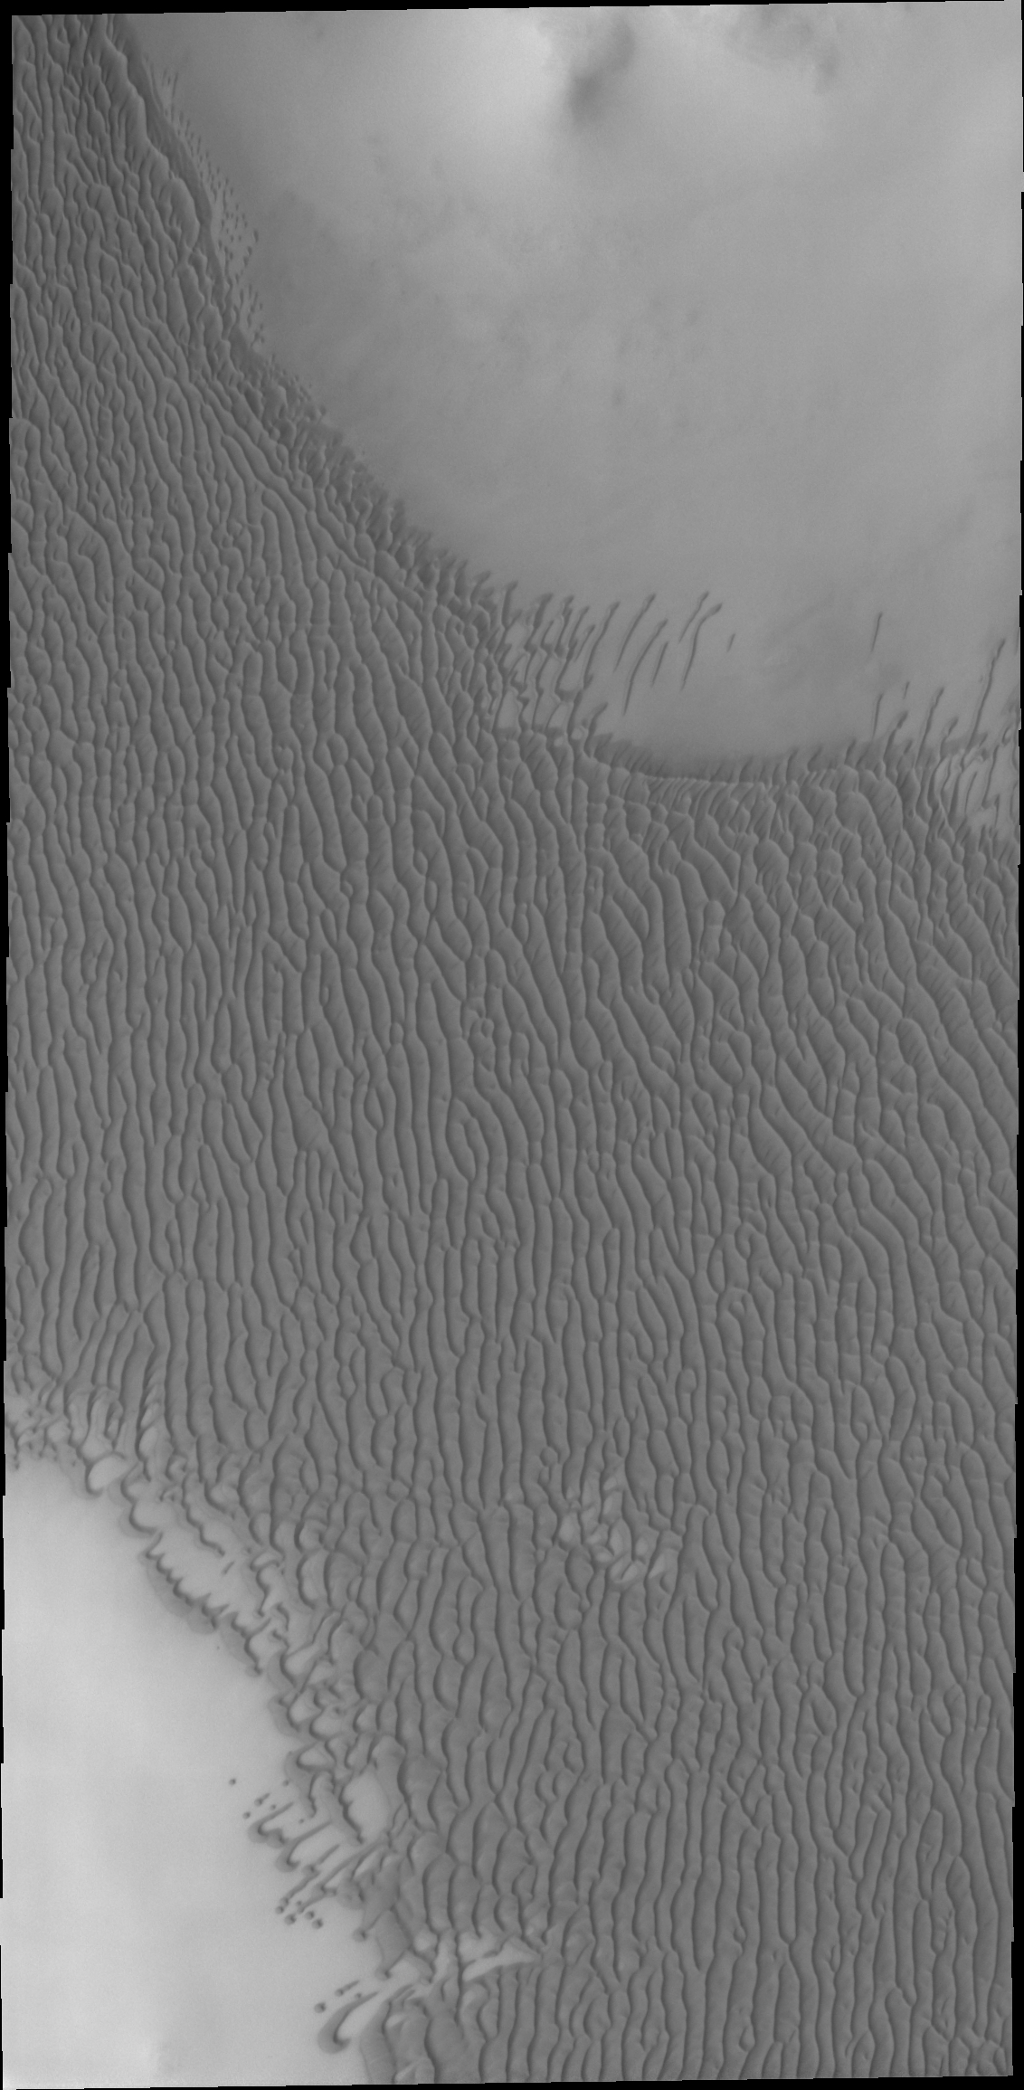 The dunes in this image from NASA's Mars Odyssey spacecraft are part of a large dune field called Olympia Undae, which surrounds part of Mars' north polar cap.